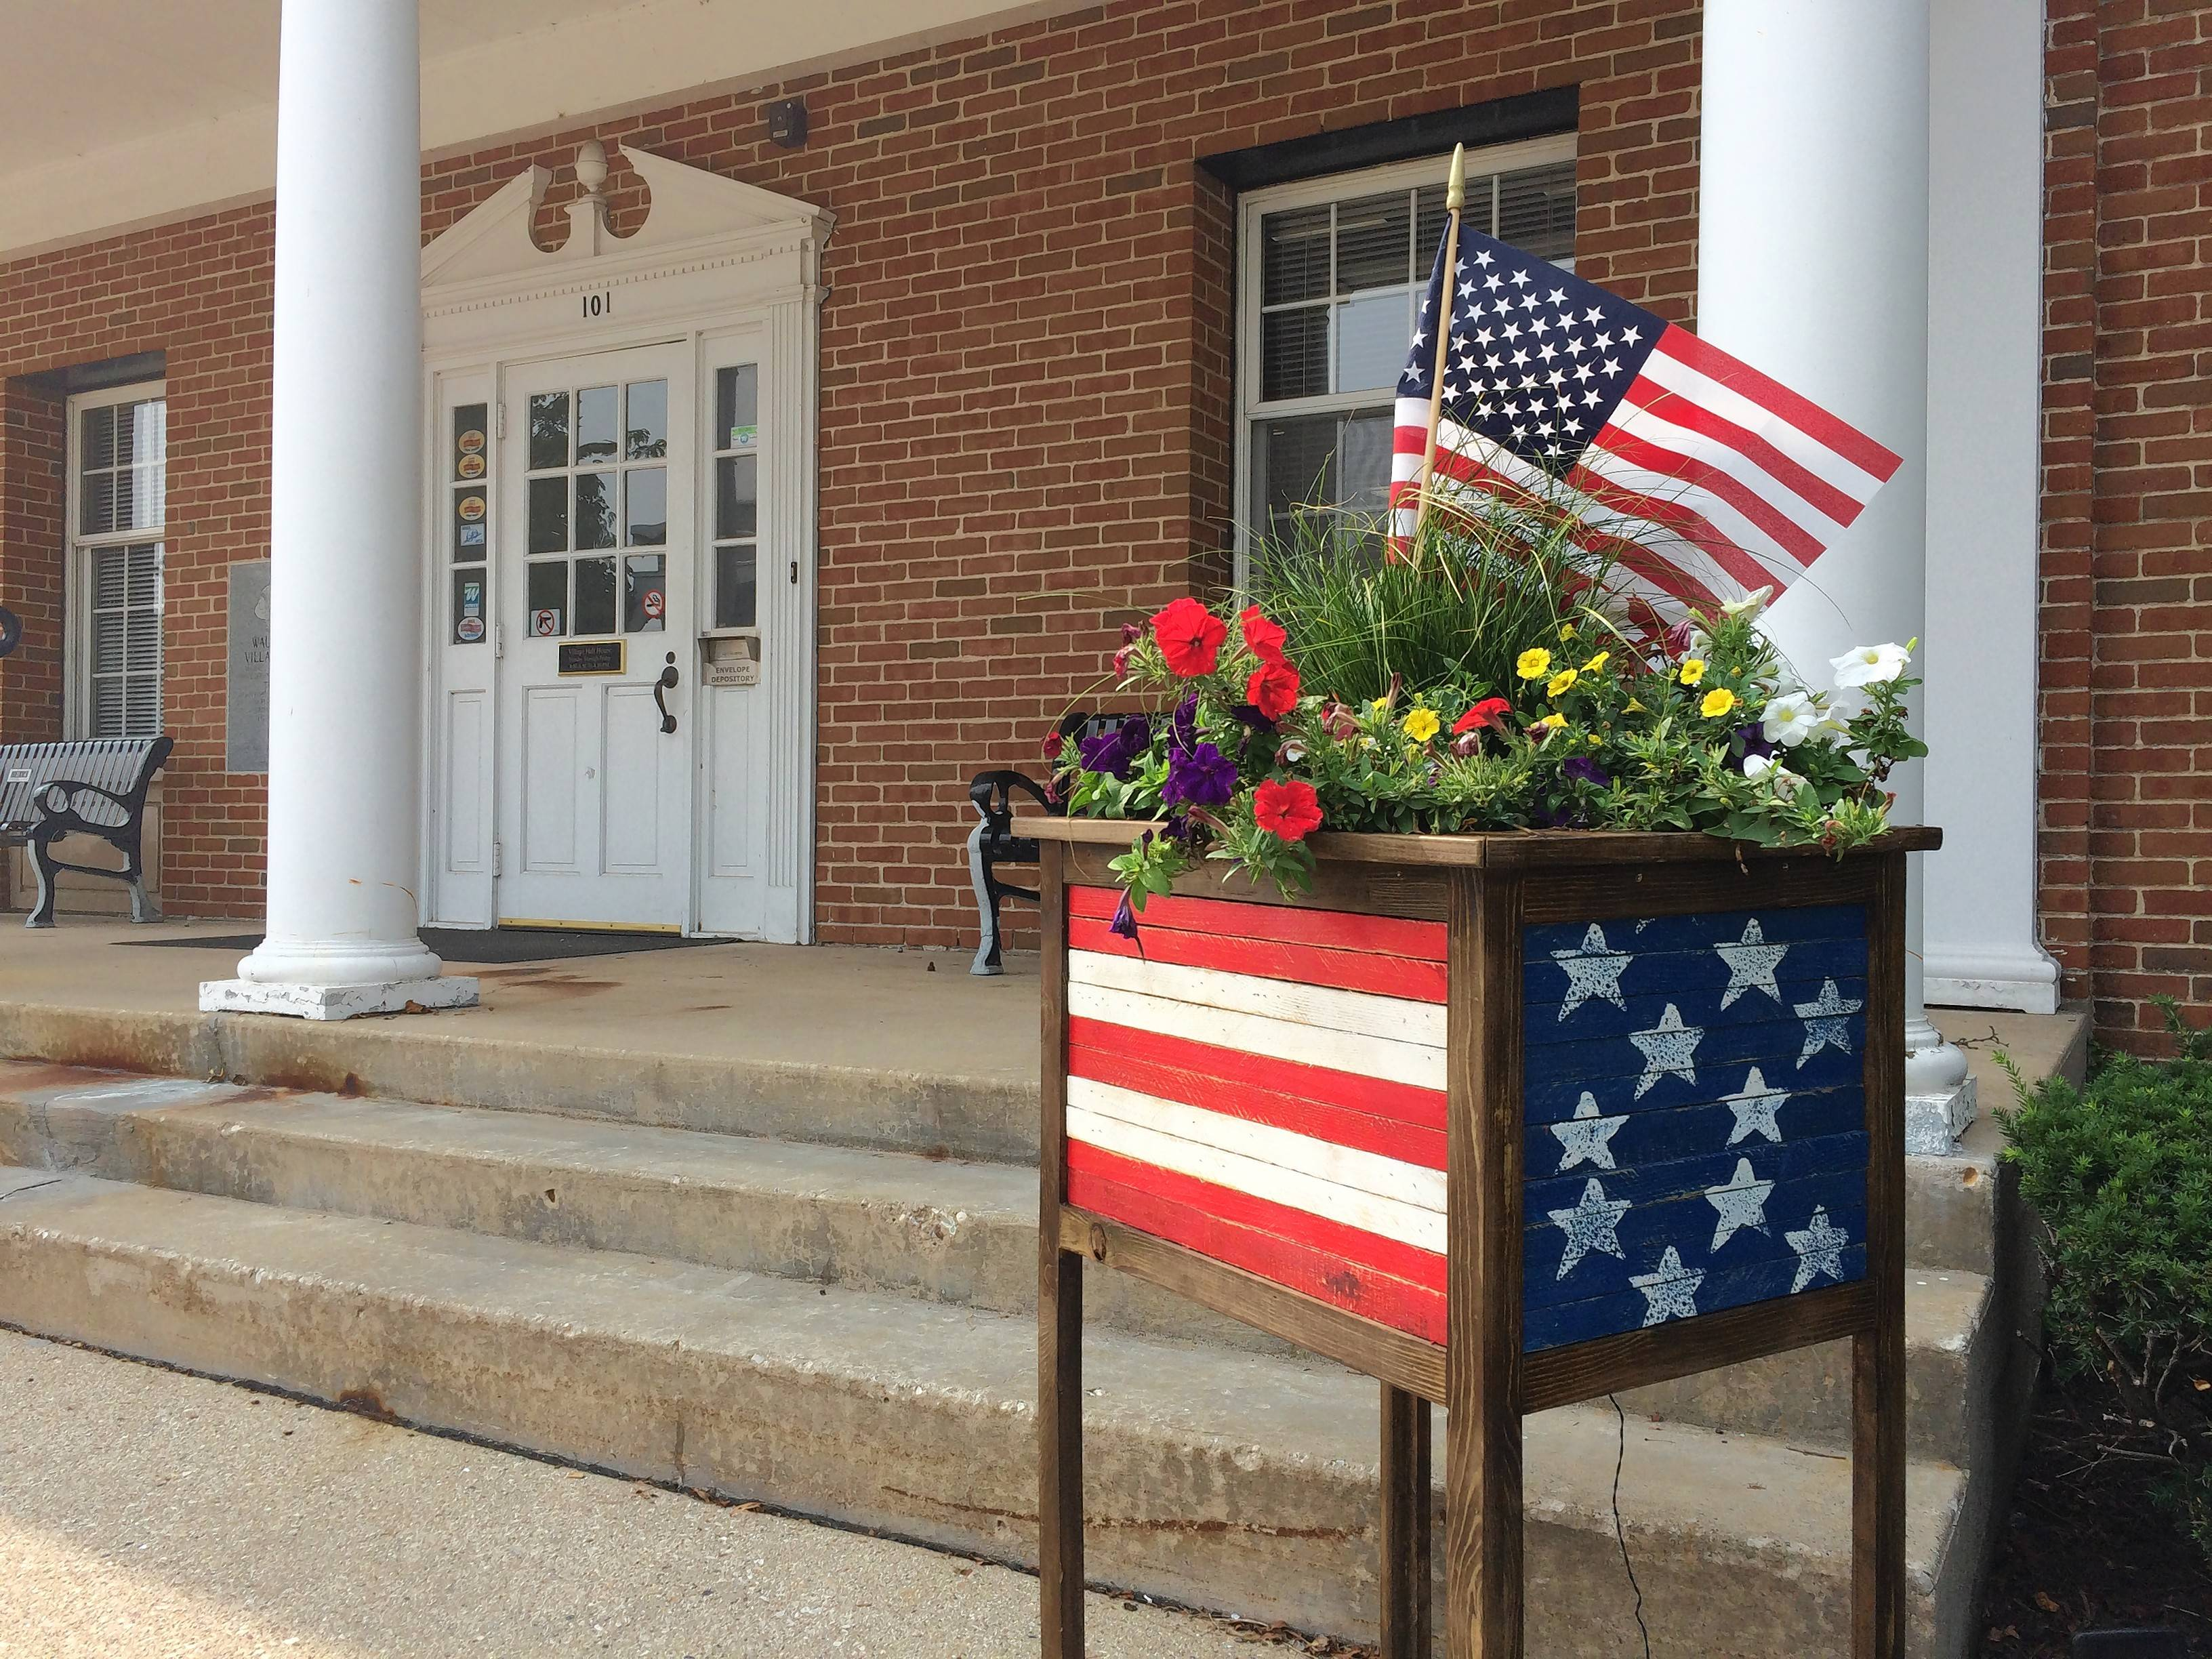 Fifteen planters decorate Main Street as part of an annual public art exhibition in Wauconda. The one in front of village hall has a U.S. flag motif.